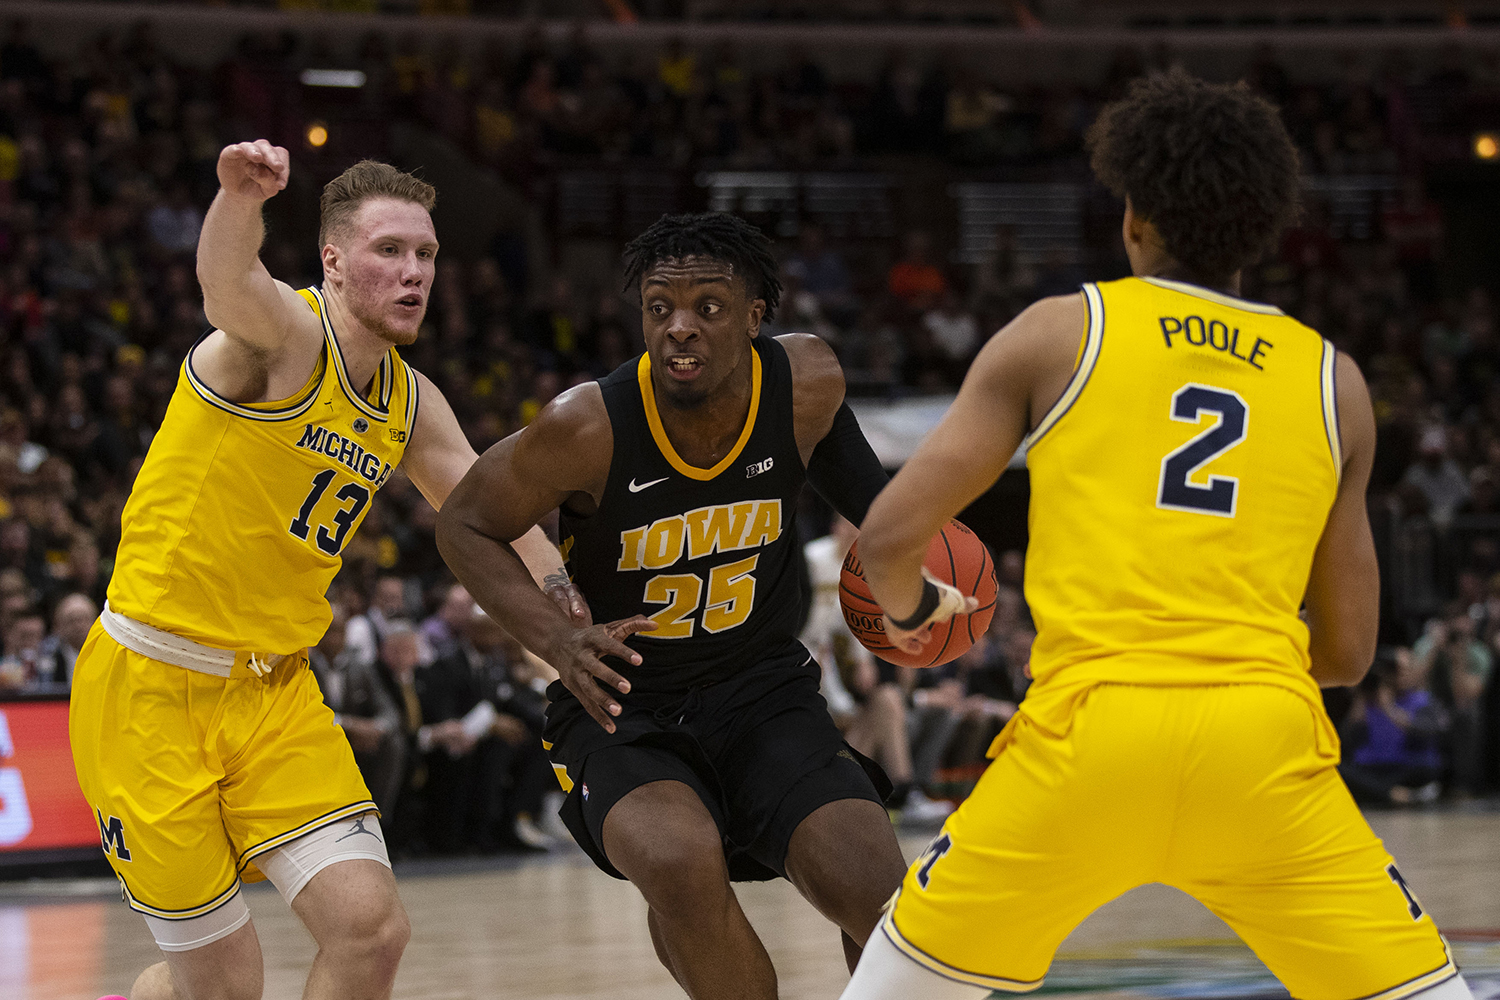 Iowa+forward+Tyler+Cook+drives+to+the+basket+during+the+Iowa%2FMichigan+Big+Ten+Tournament+men%27s+basketball+game+in+the+United+Center+in+Chicago+on+Friday%2C+March+15%2C+2019.+The+Wolverines+defeated+the+Hawkeyes%2C+74-53.+